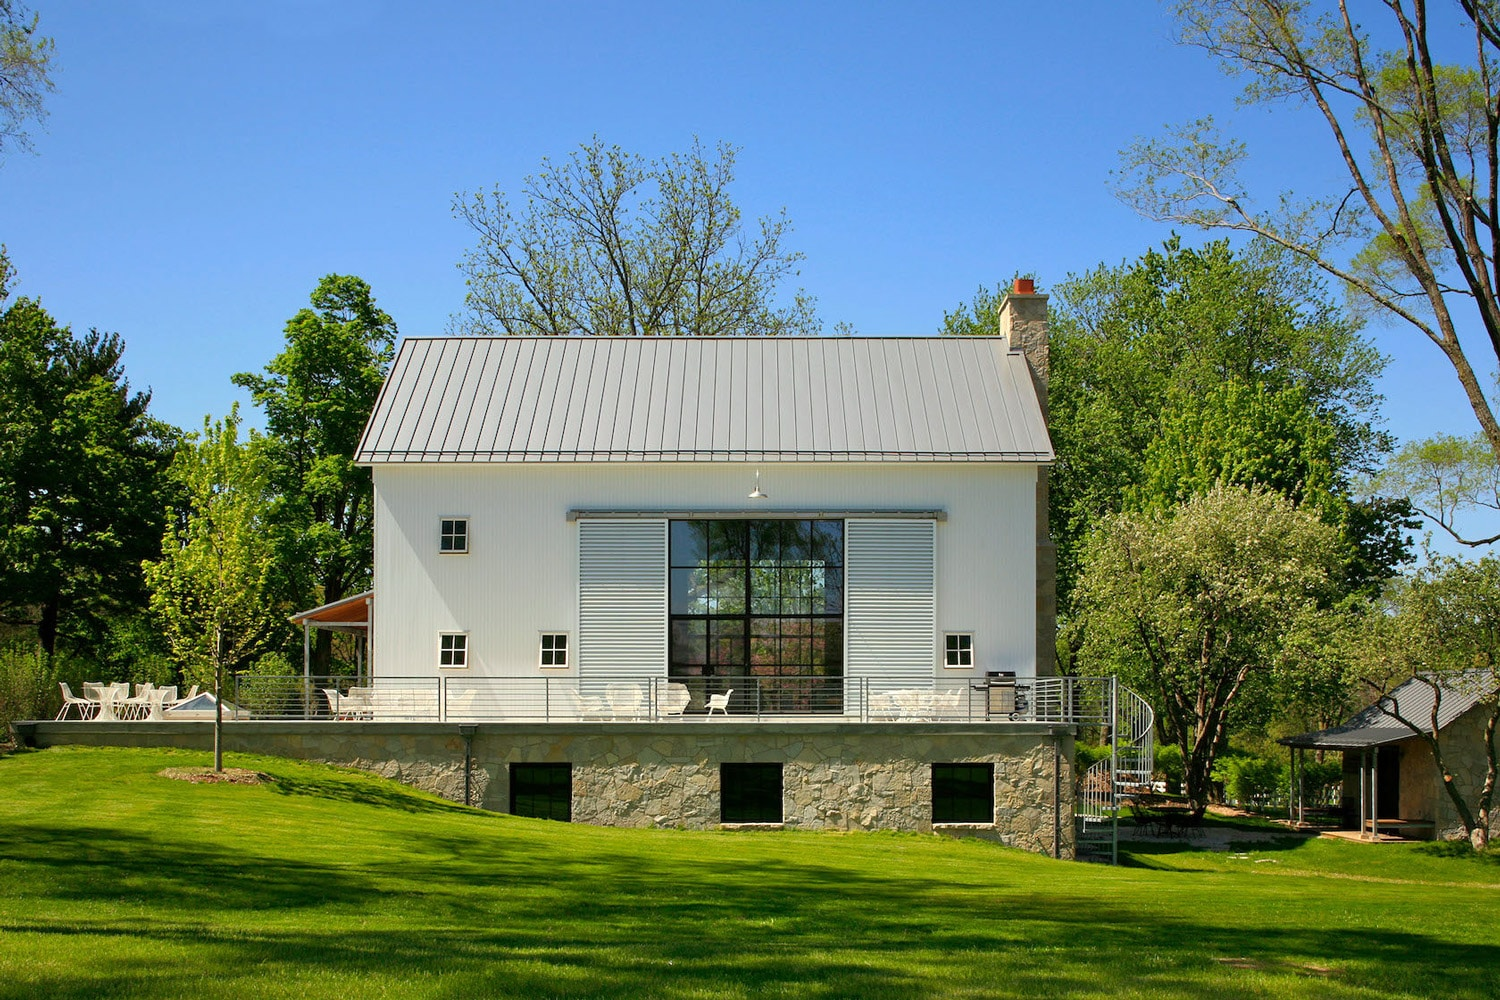 Michigan Barn To House Conversion by NorthWorks Architects